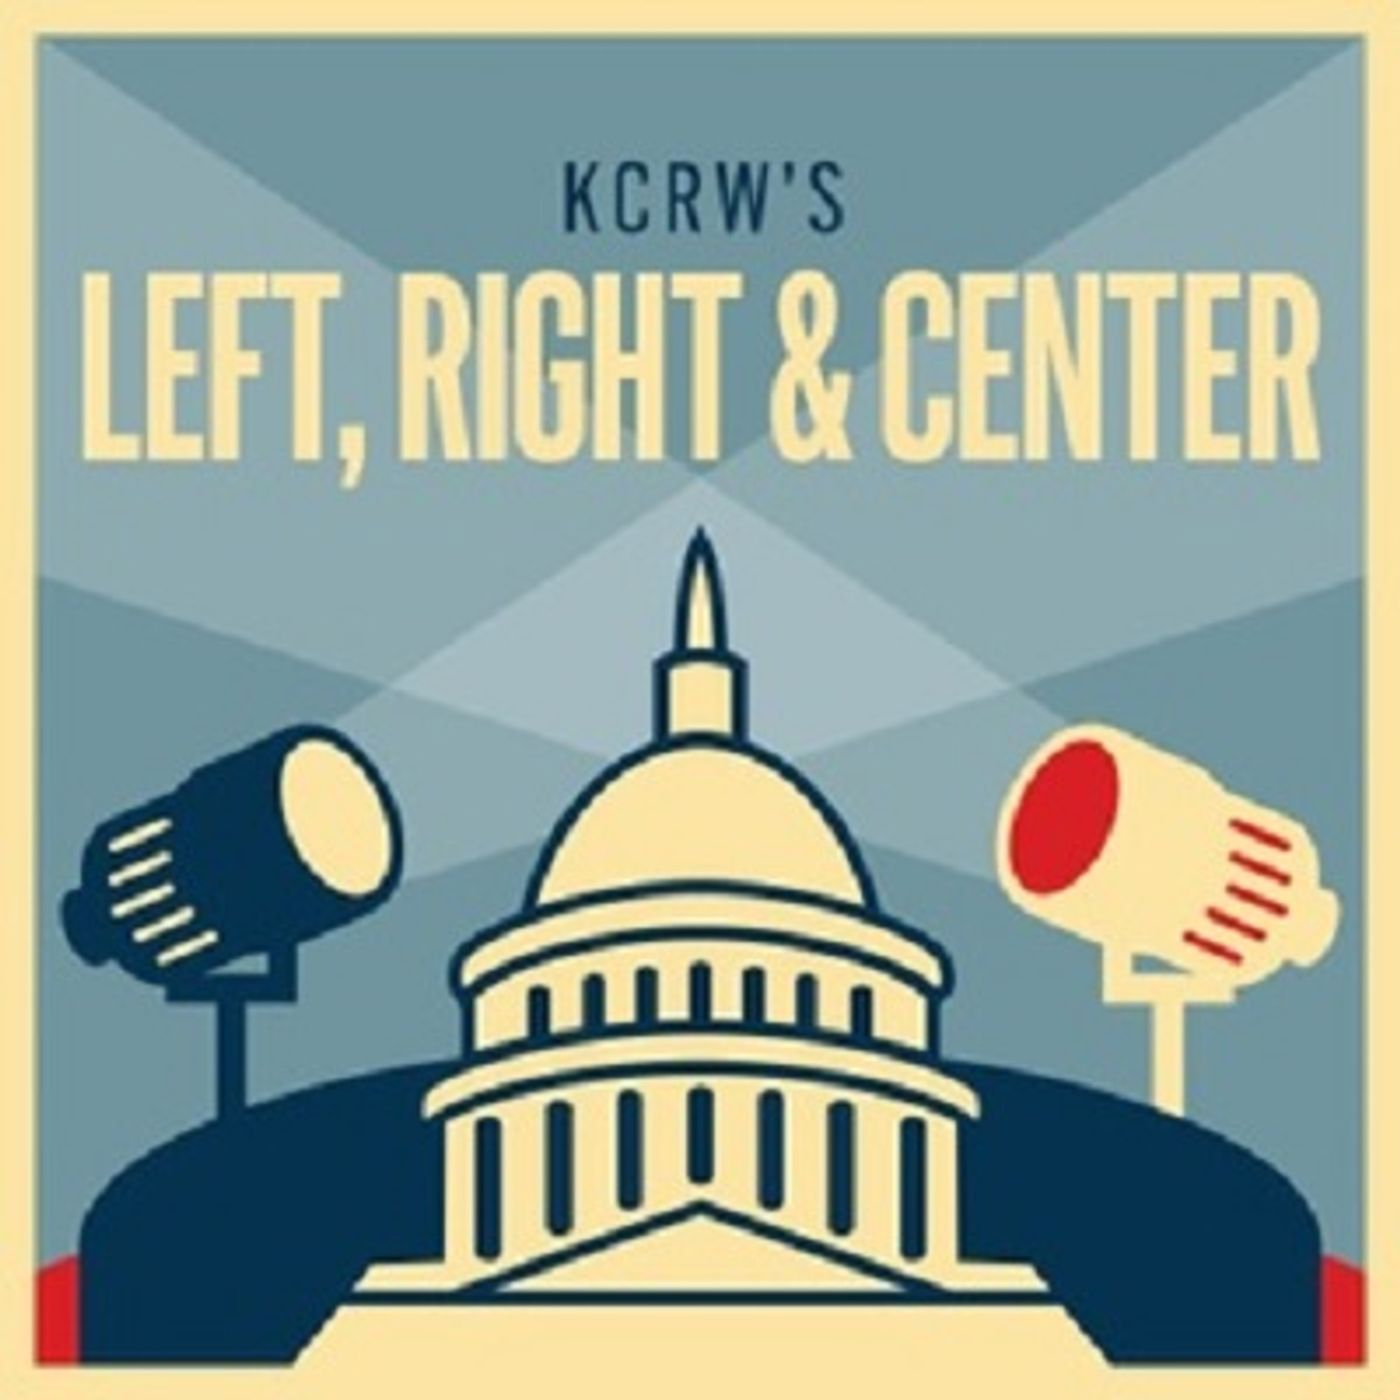 Heartland Newsfeed Radio Network: Left Right & Center (August 18, 2019)